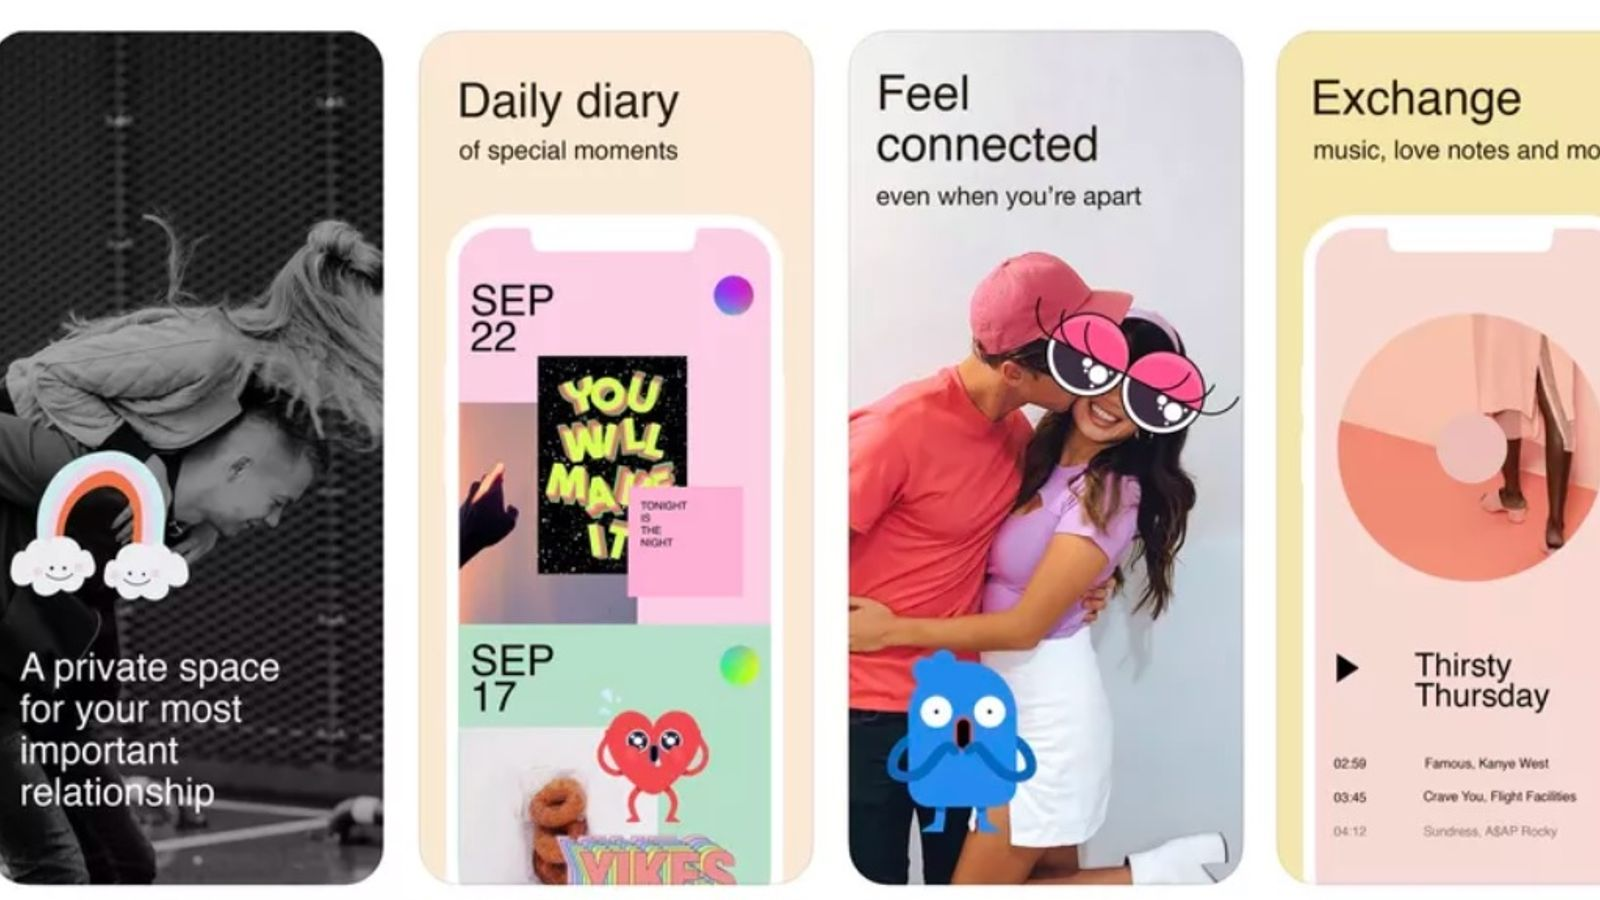 Facebook launches Tuned app to let couples build digital scrapbook